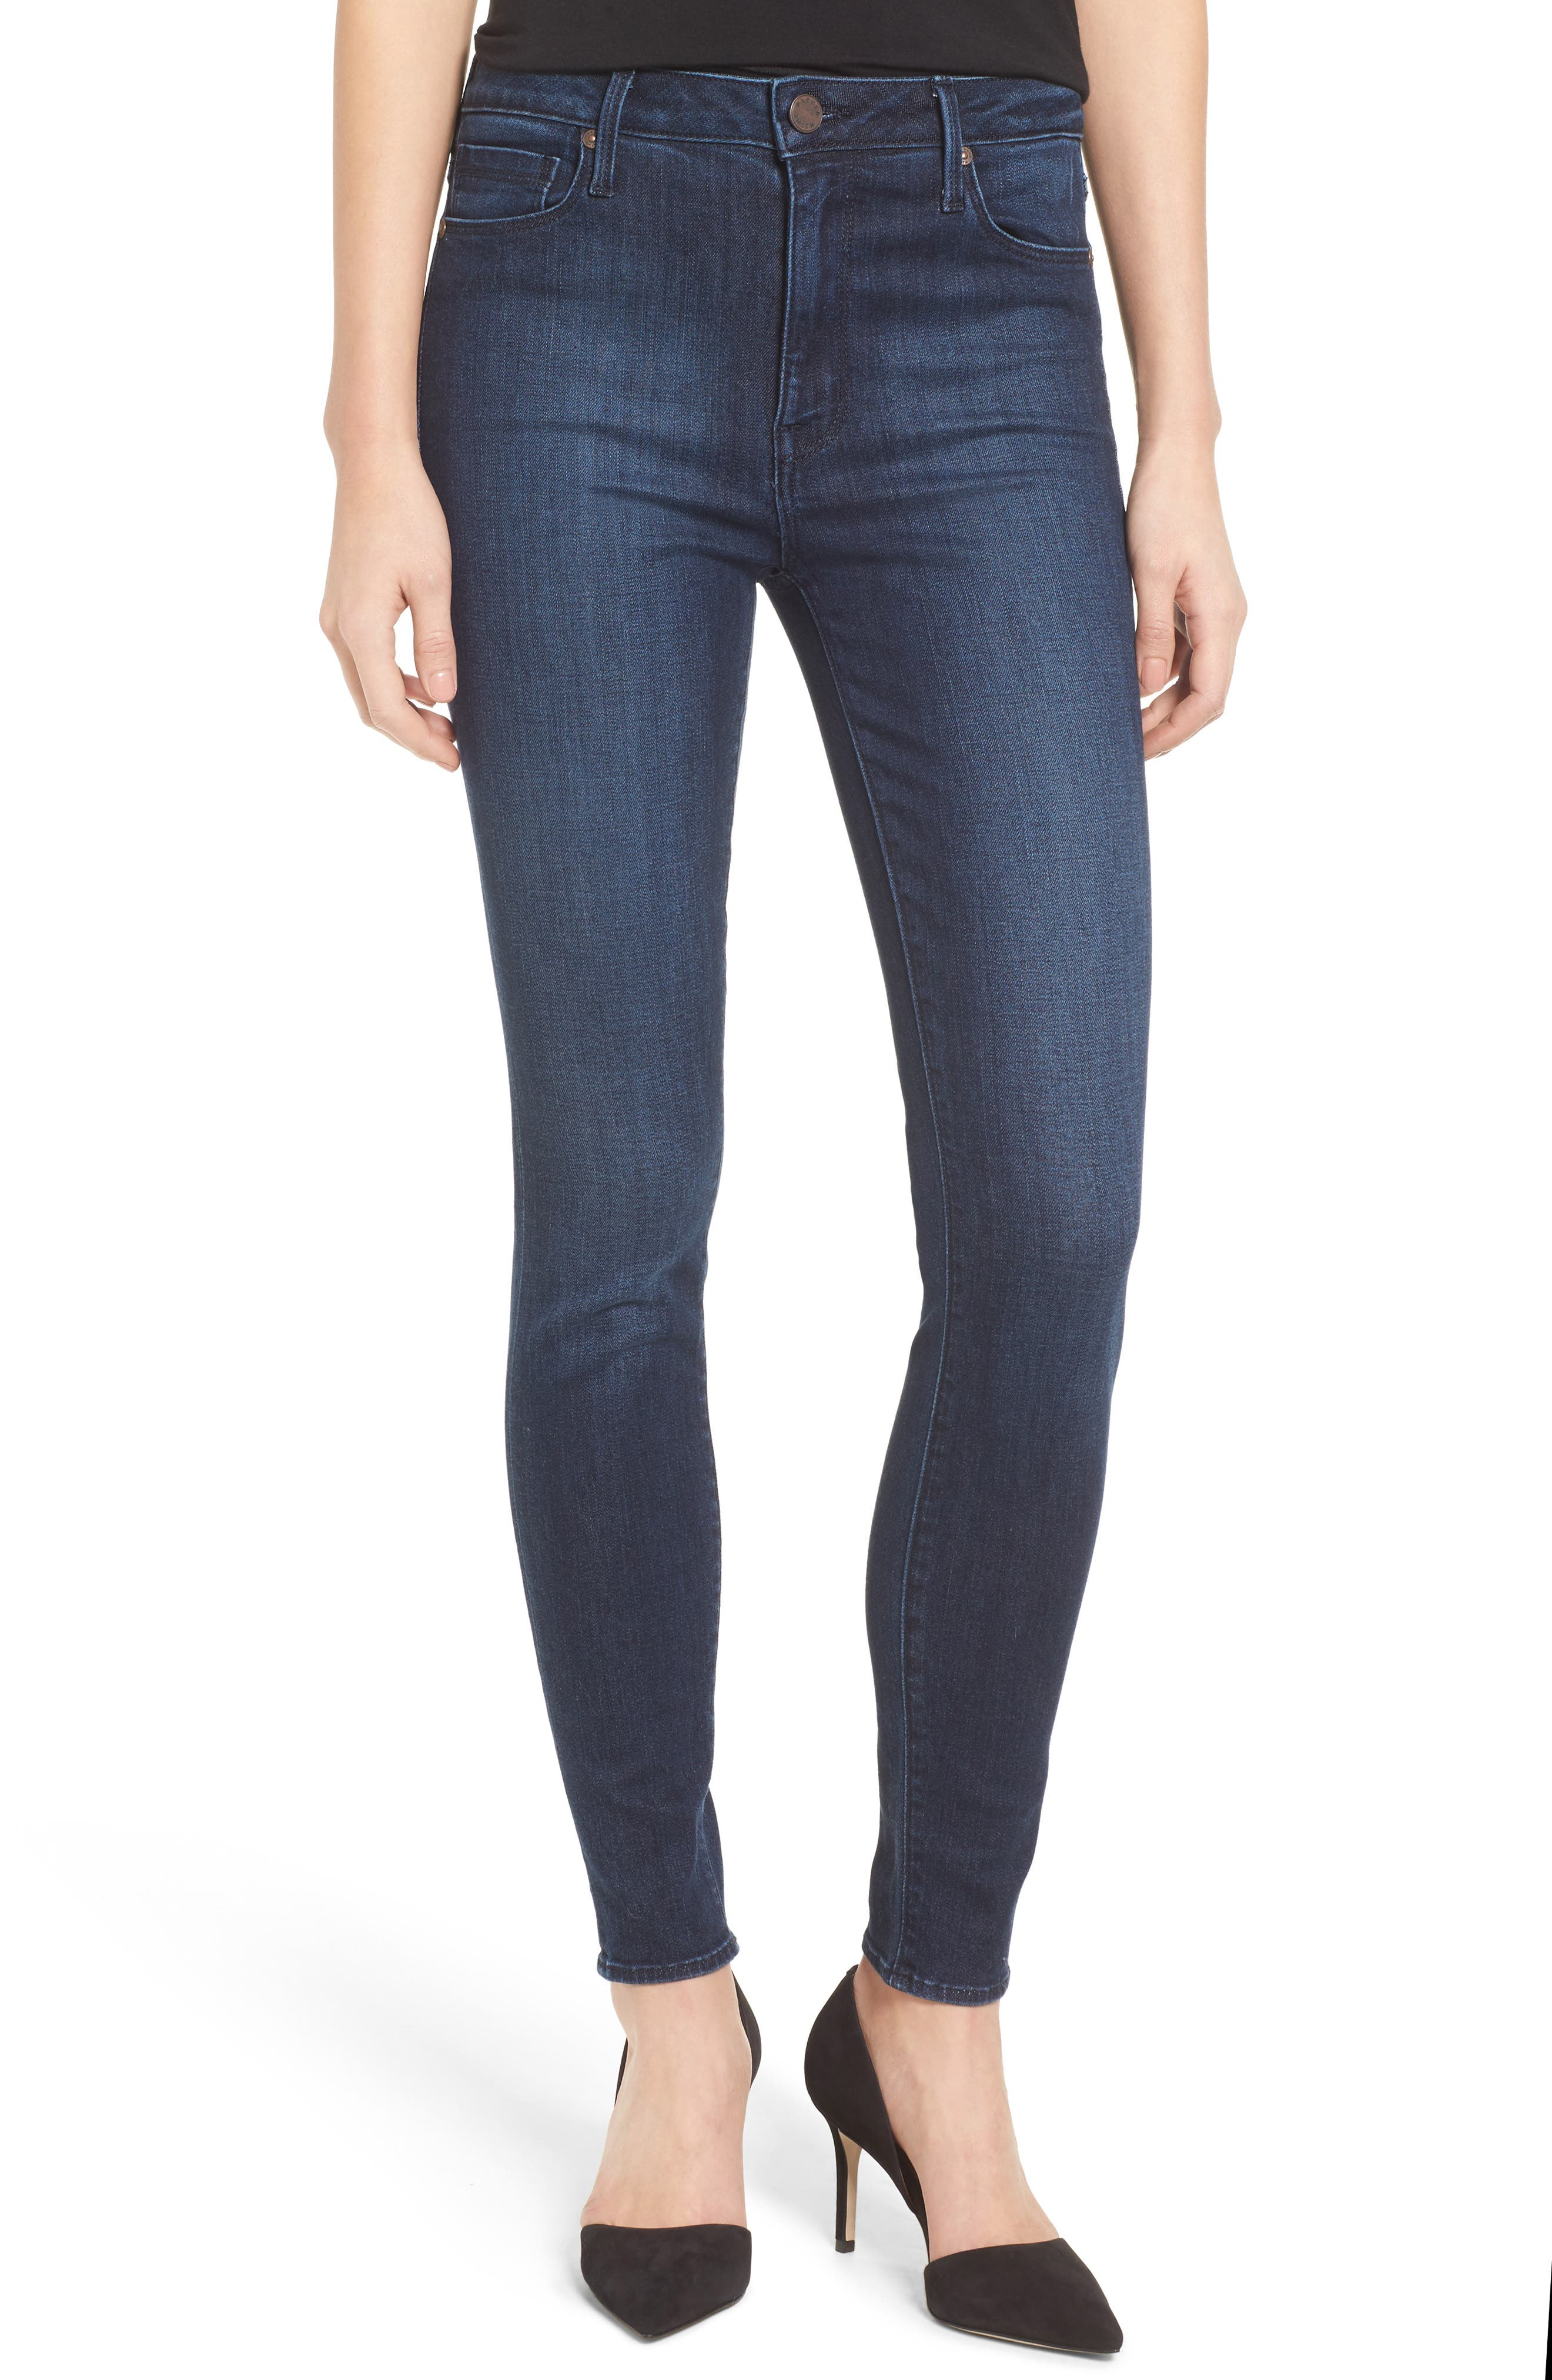 Alternate Image 1 Selected - PARKER SMITH Bombshell High Waist Stretch Skinny Jeans (Baltic)